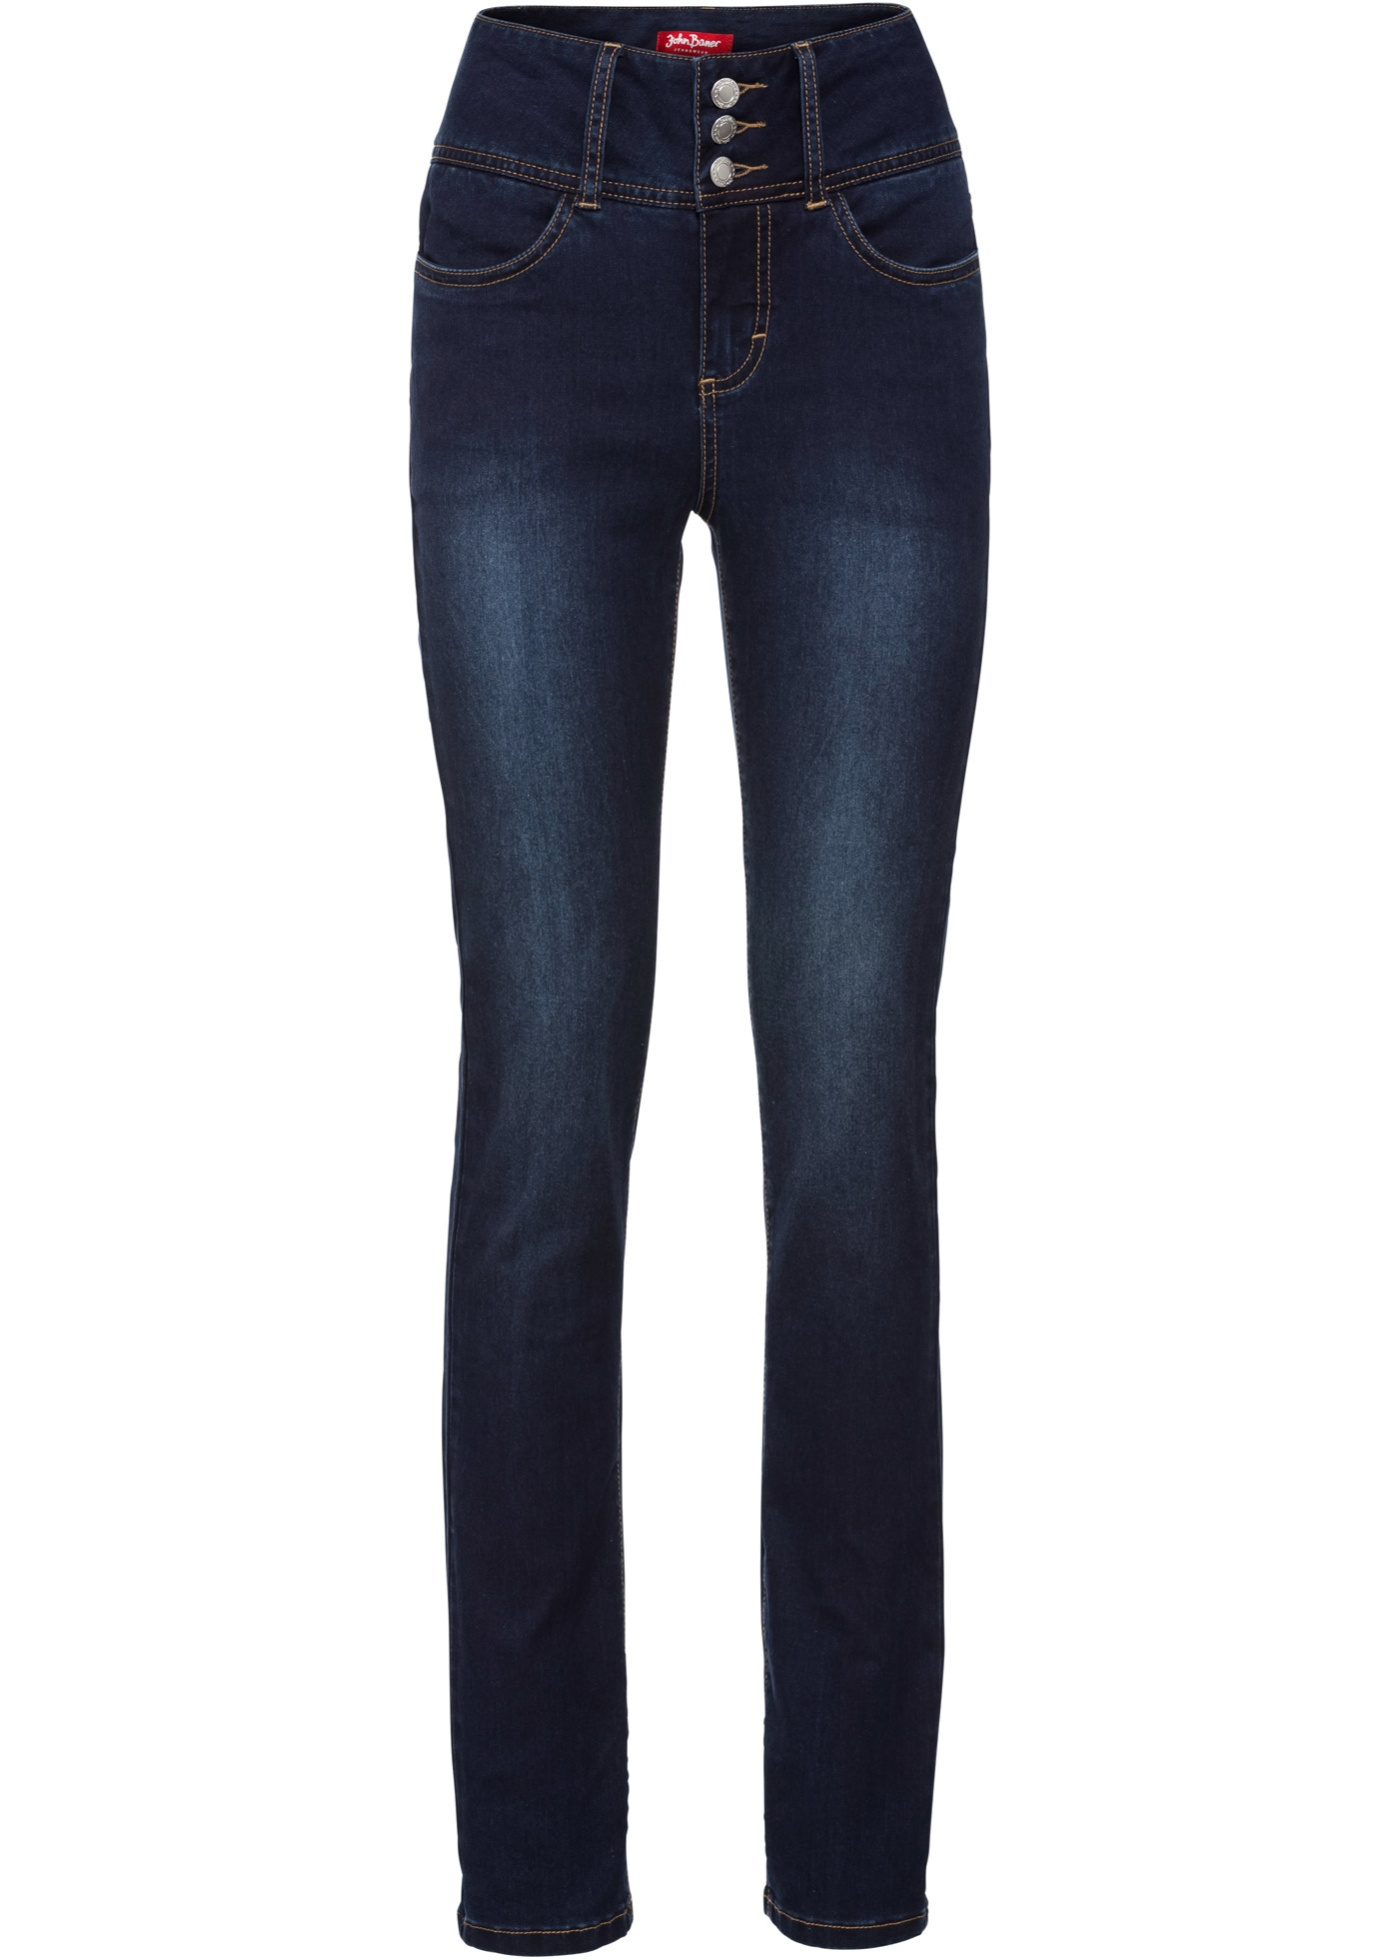 Bonprix - Shaping jeans 299.00